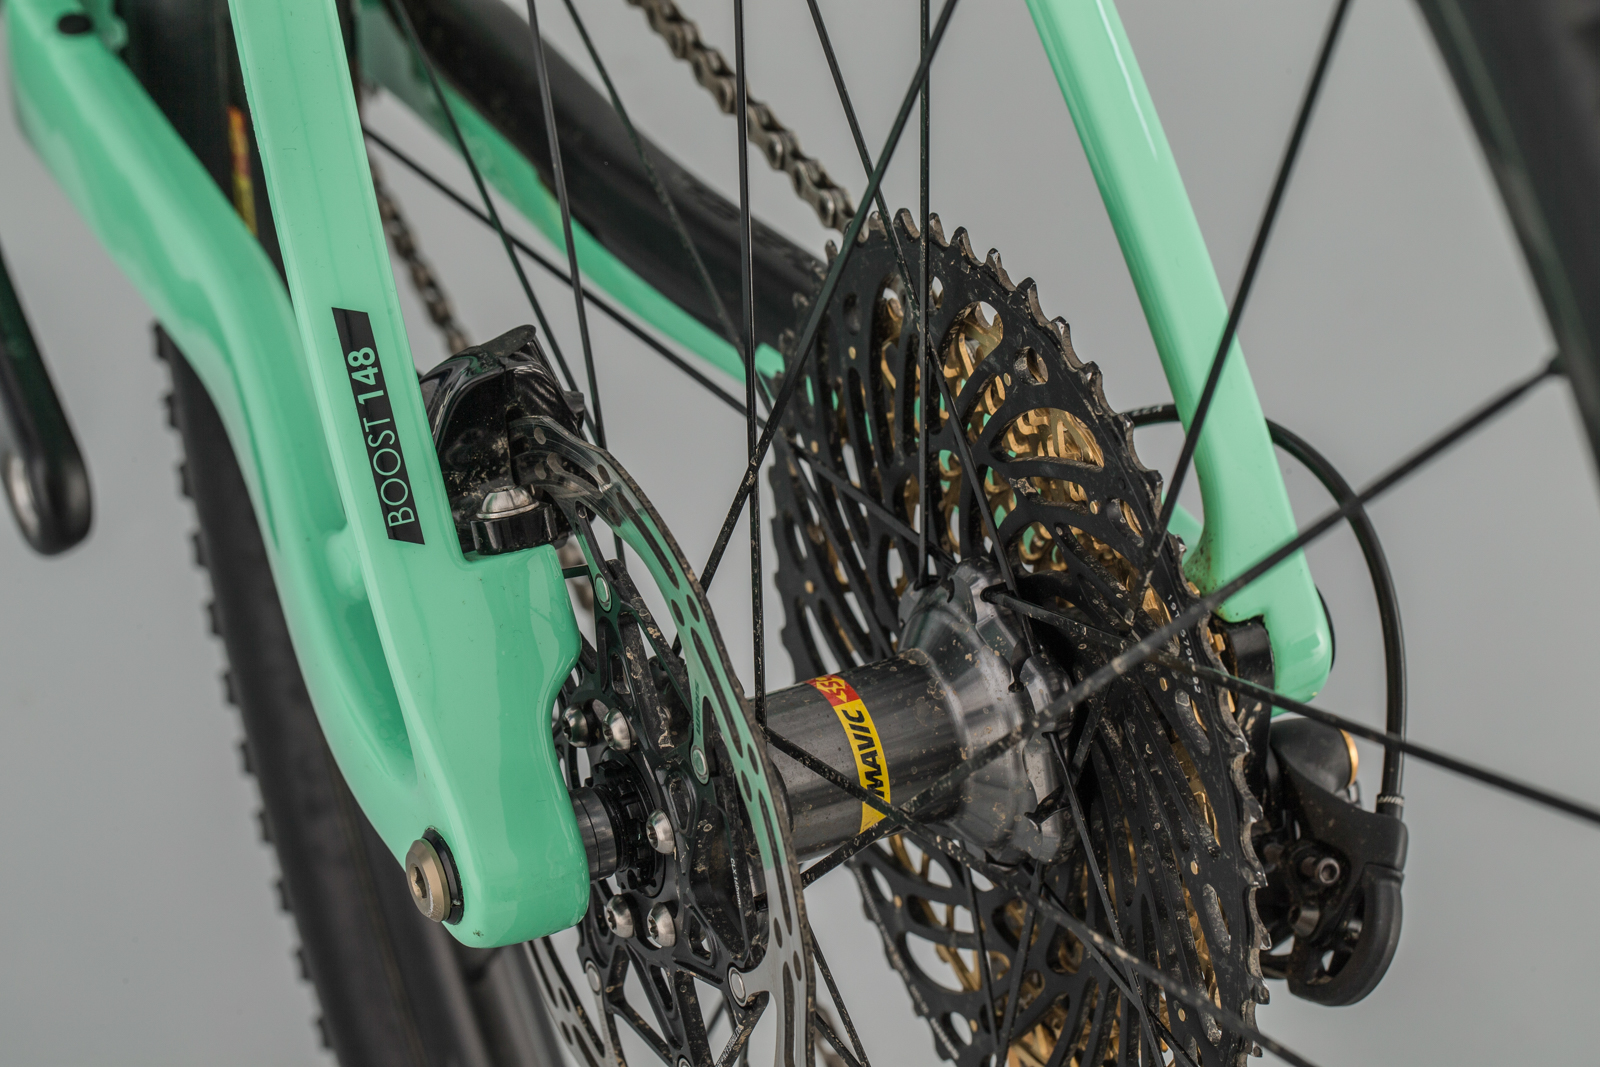 e88c80d63a1 Hate your wrists? Love climbing? Here's the bike for you - MBR